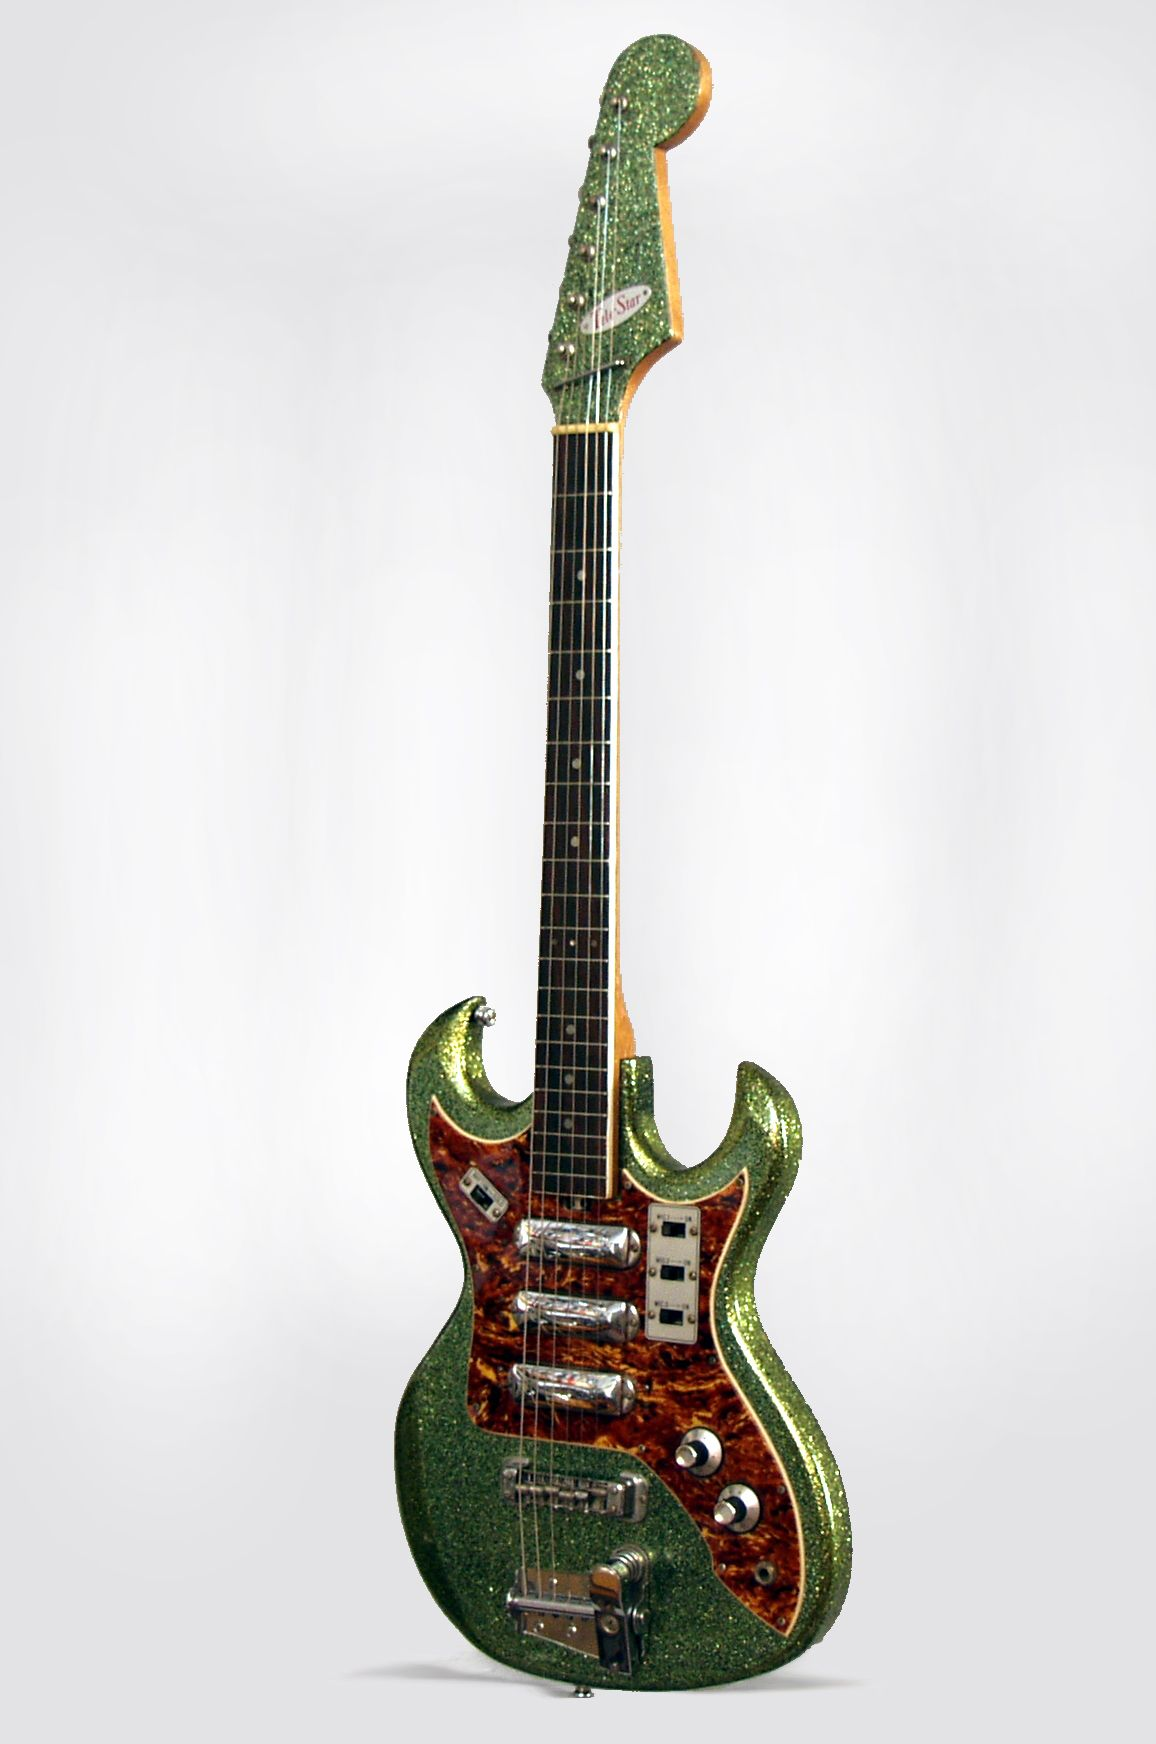 hight resolution of tele star model solid body electric guitar most likely made by teisco c 1964 made in japan green sparkle finish